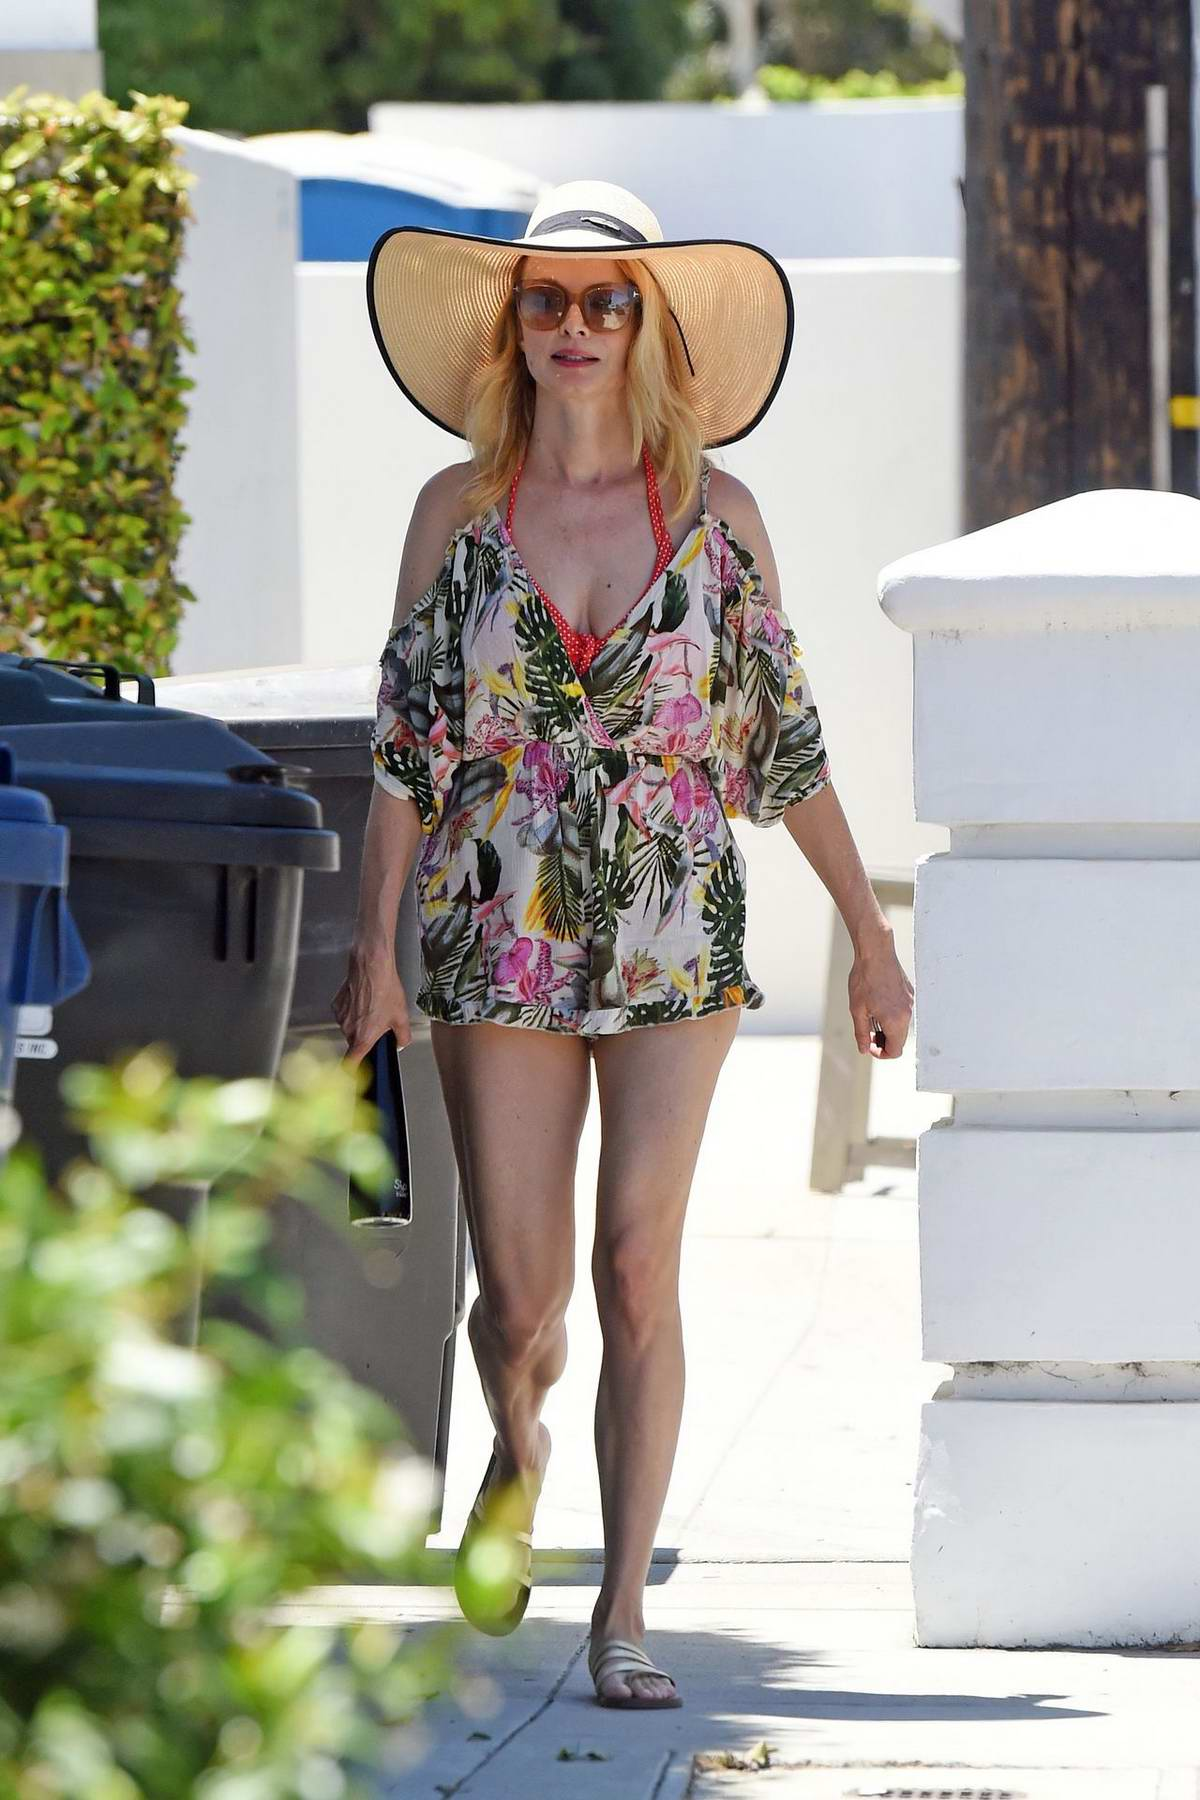 Heather Graham wears a floral romper with a large sunhat while visiting a beach house with friends in Malibu, California